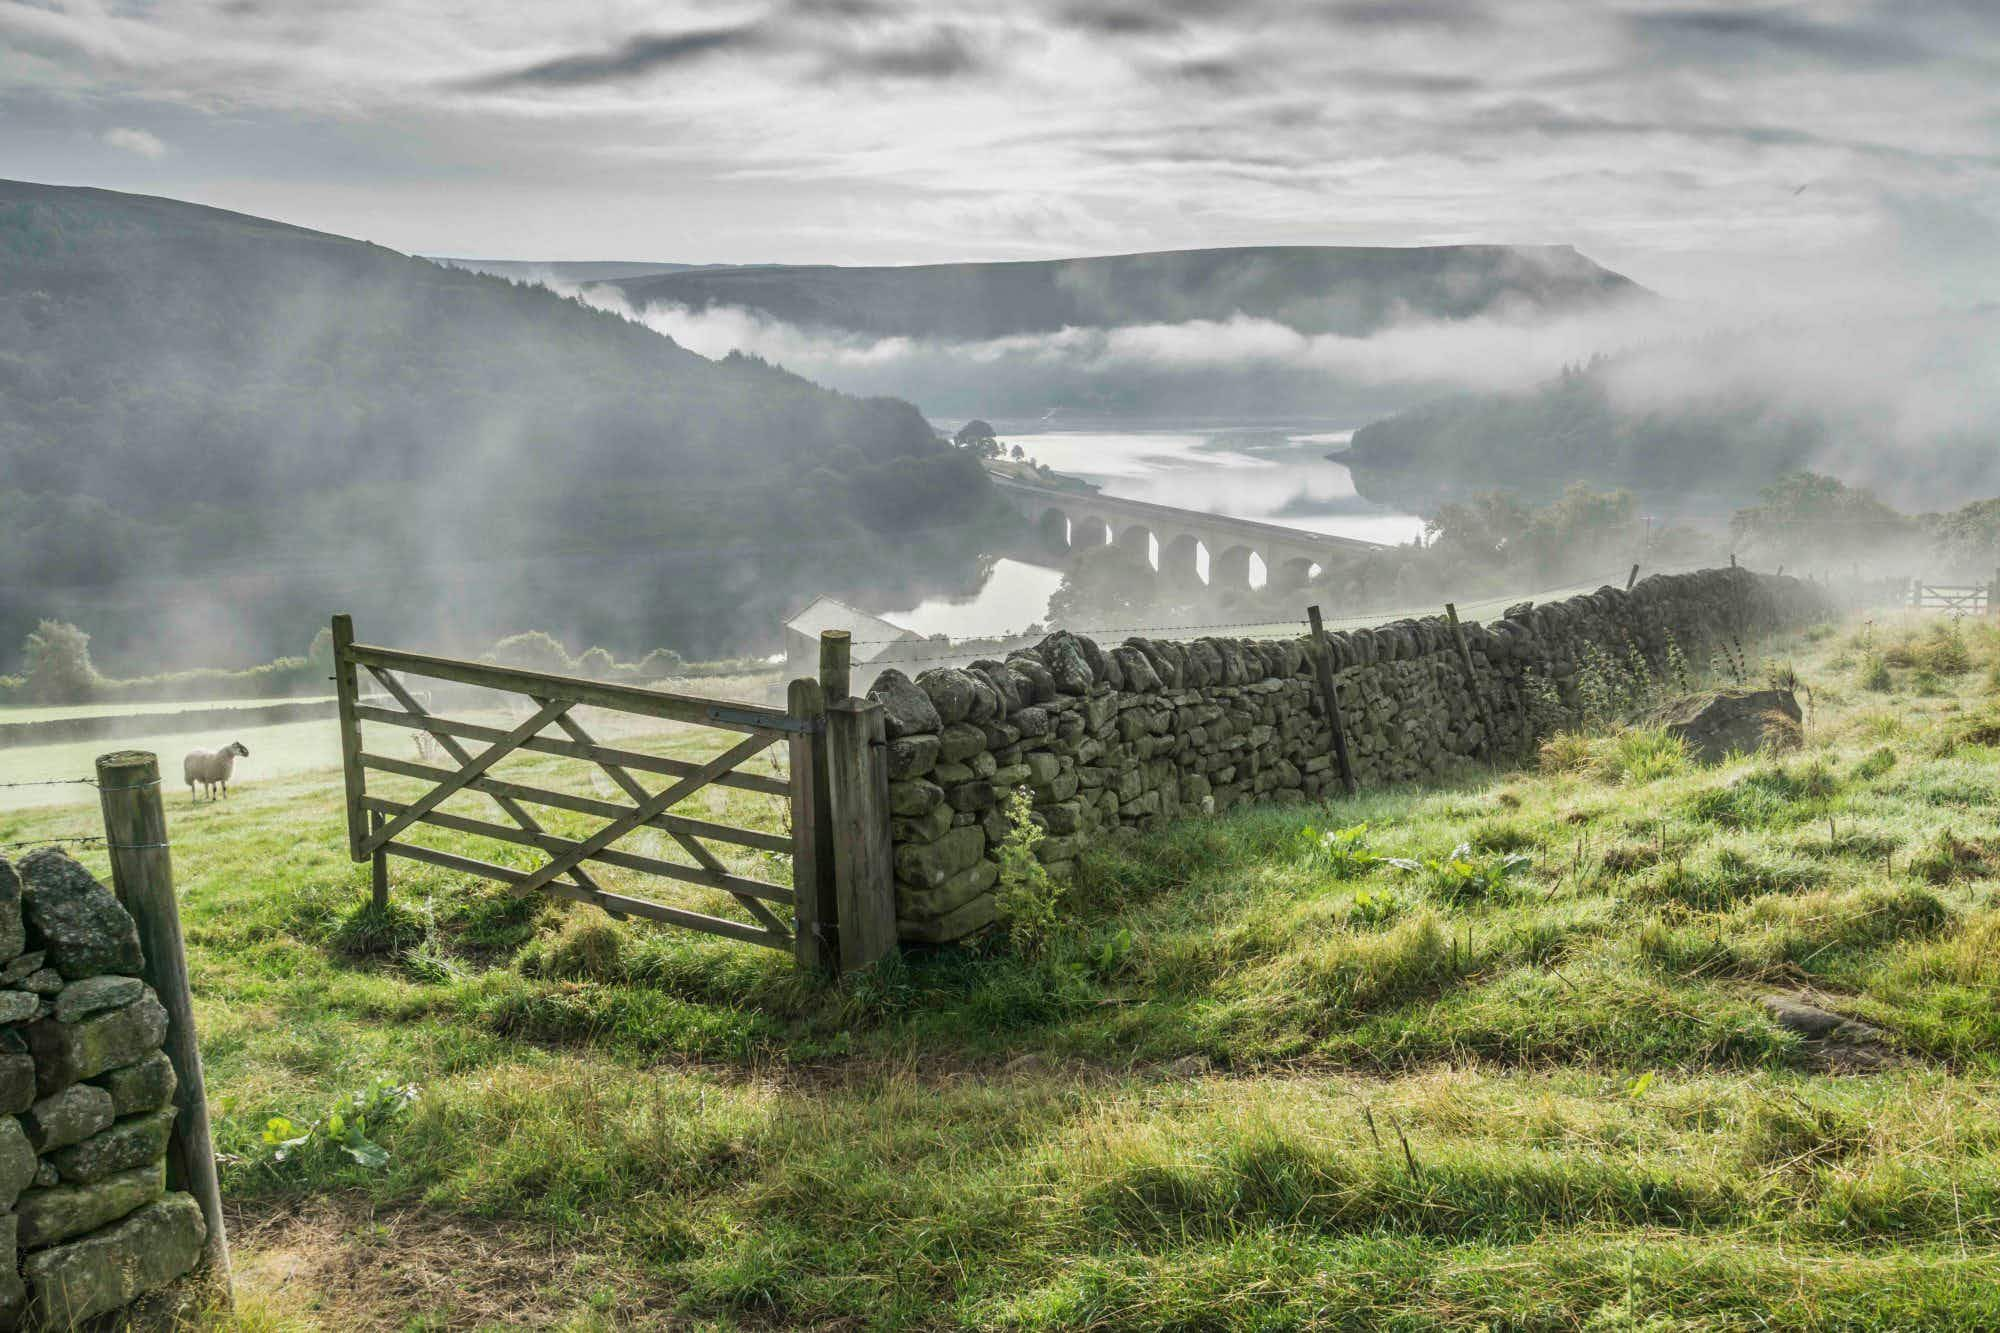 'So many beautiful places in such a small area,' see England's Peak District in a new light